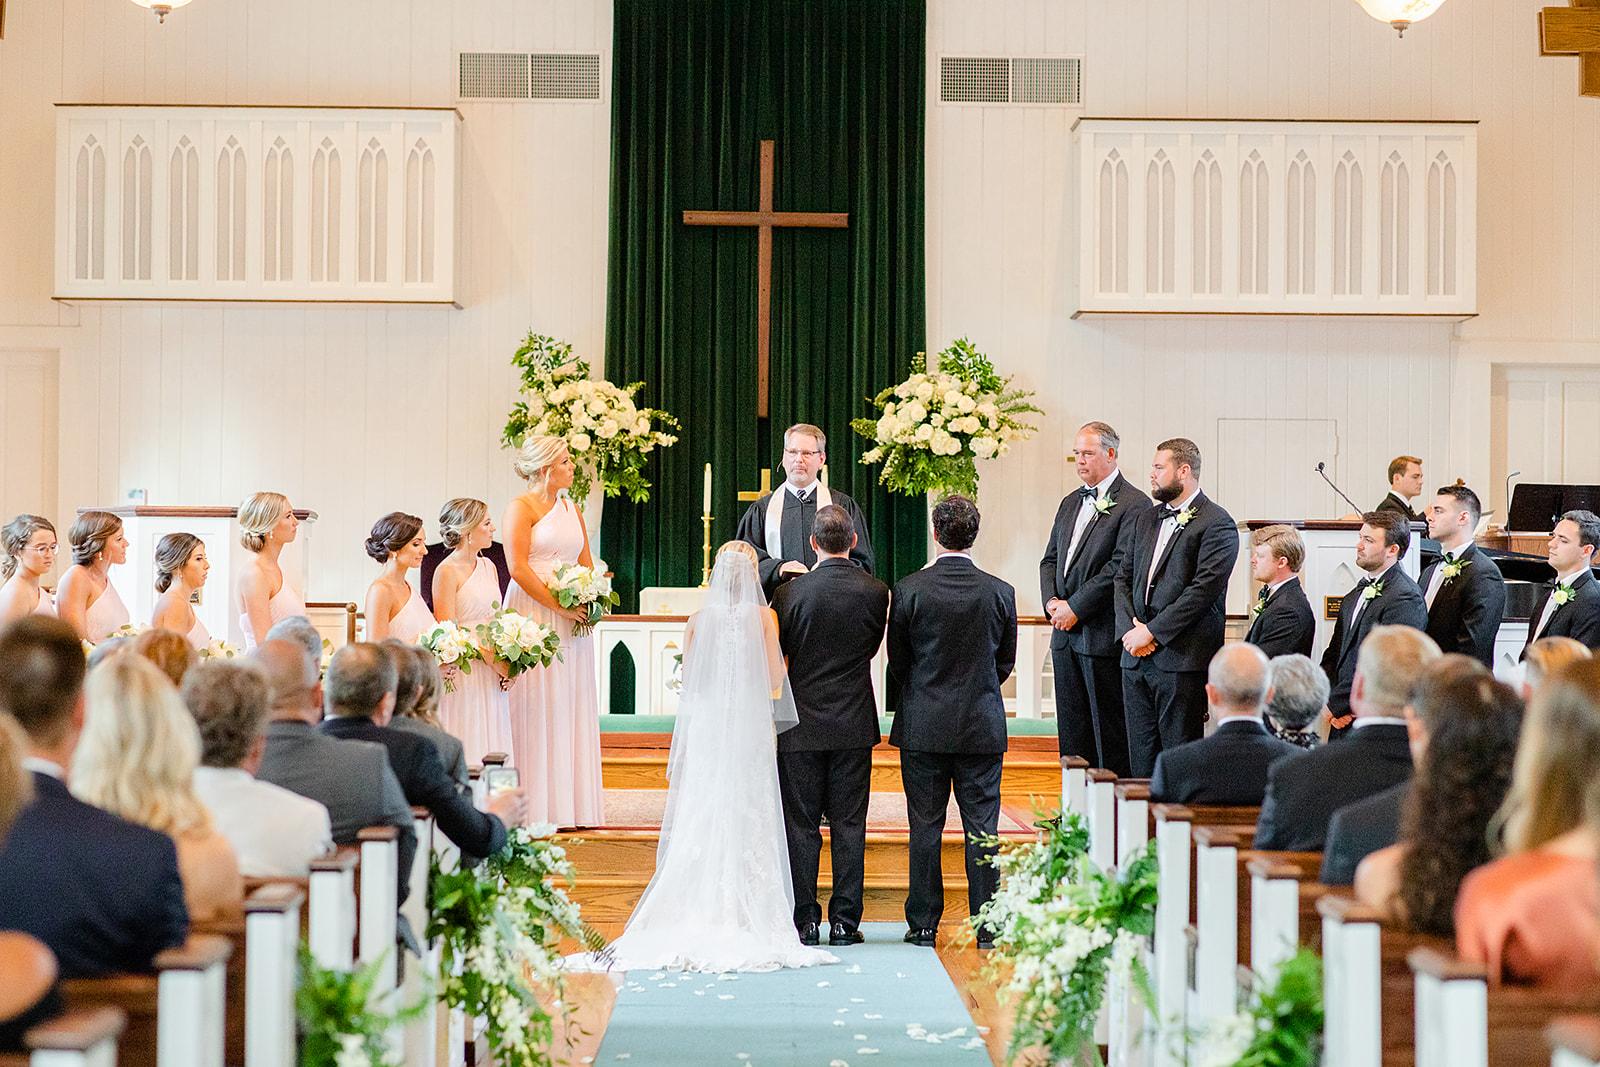 Blush-Black-Tie-Wedding-at-the-Grand-Hotel-in-Point-Clear-Alabama-Anna-Filly-Photography-Cross-Wedding-Ceremony-43.jpg